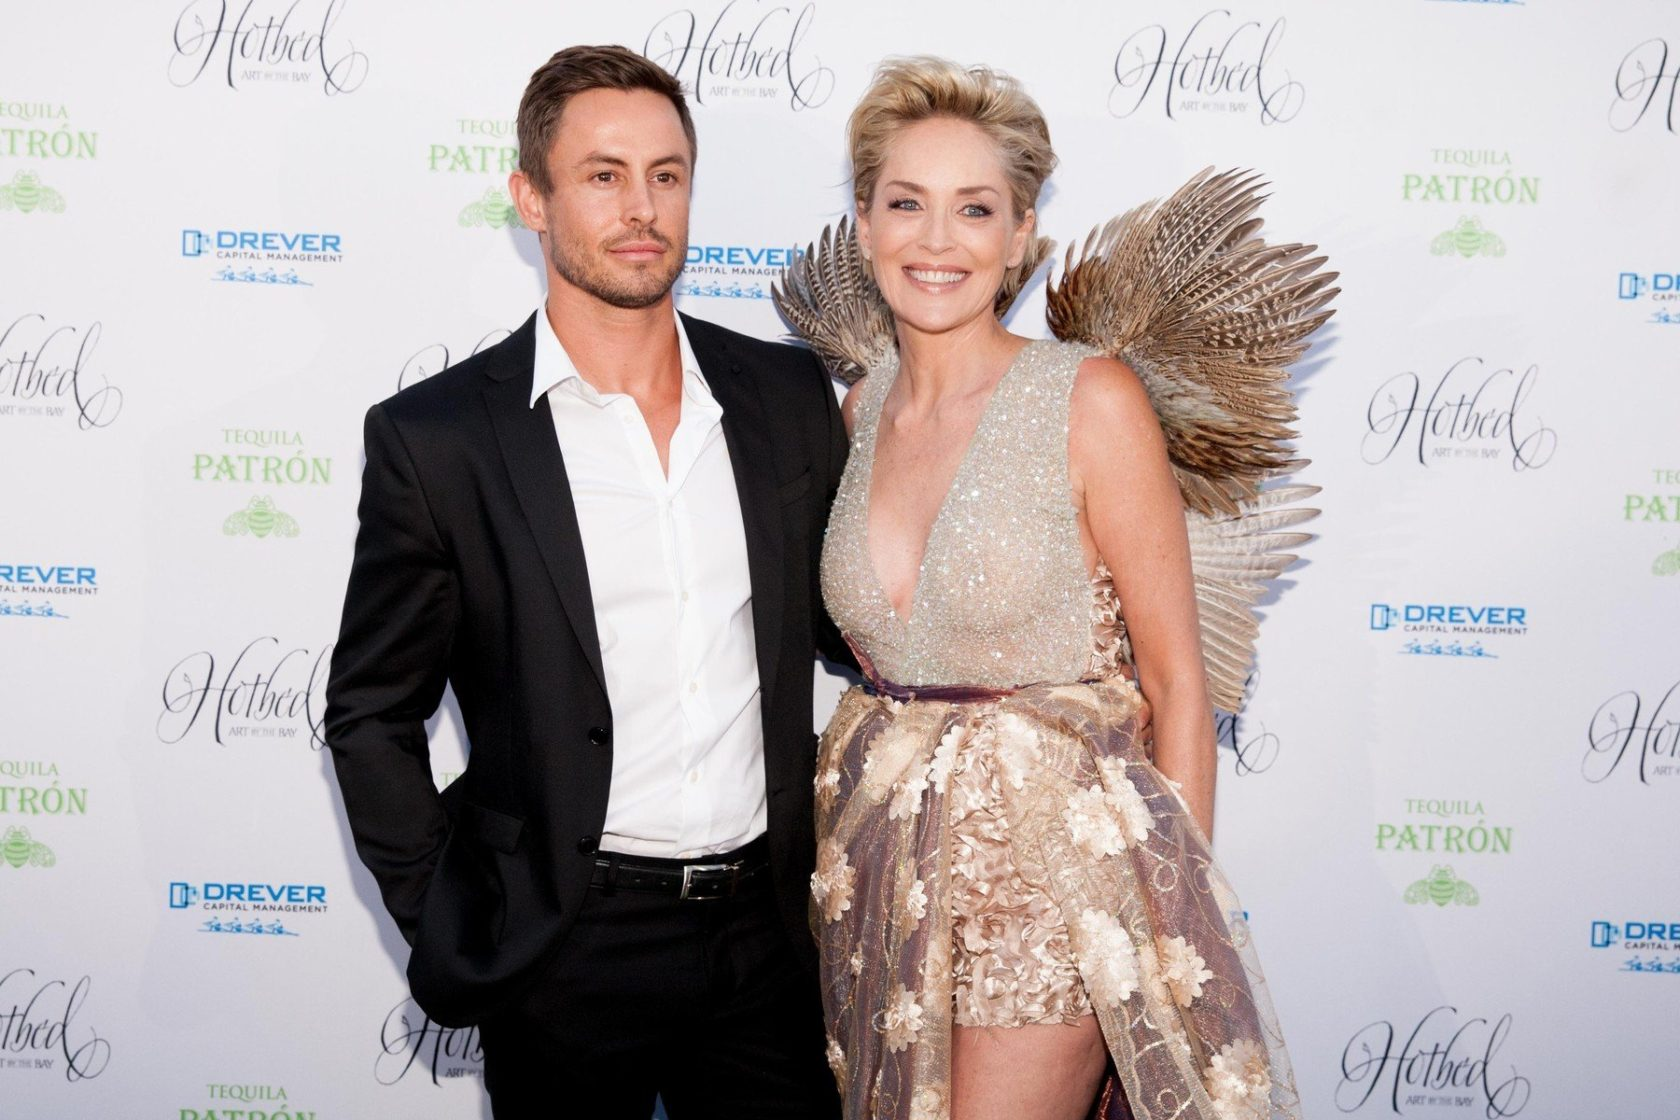 141530, Galen Drever and Sharon Stone attend the Fourth Annual Hotbed Gala at The Drever Estate in Tiburon. Tiburon, California - Saturday August 22, 2015., Image: 256374032, License: Rights-managed, Restrictions: , Model Release: no, Credit line: Profimedia, Pacific coast news